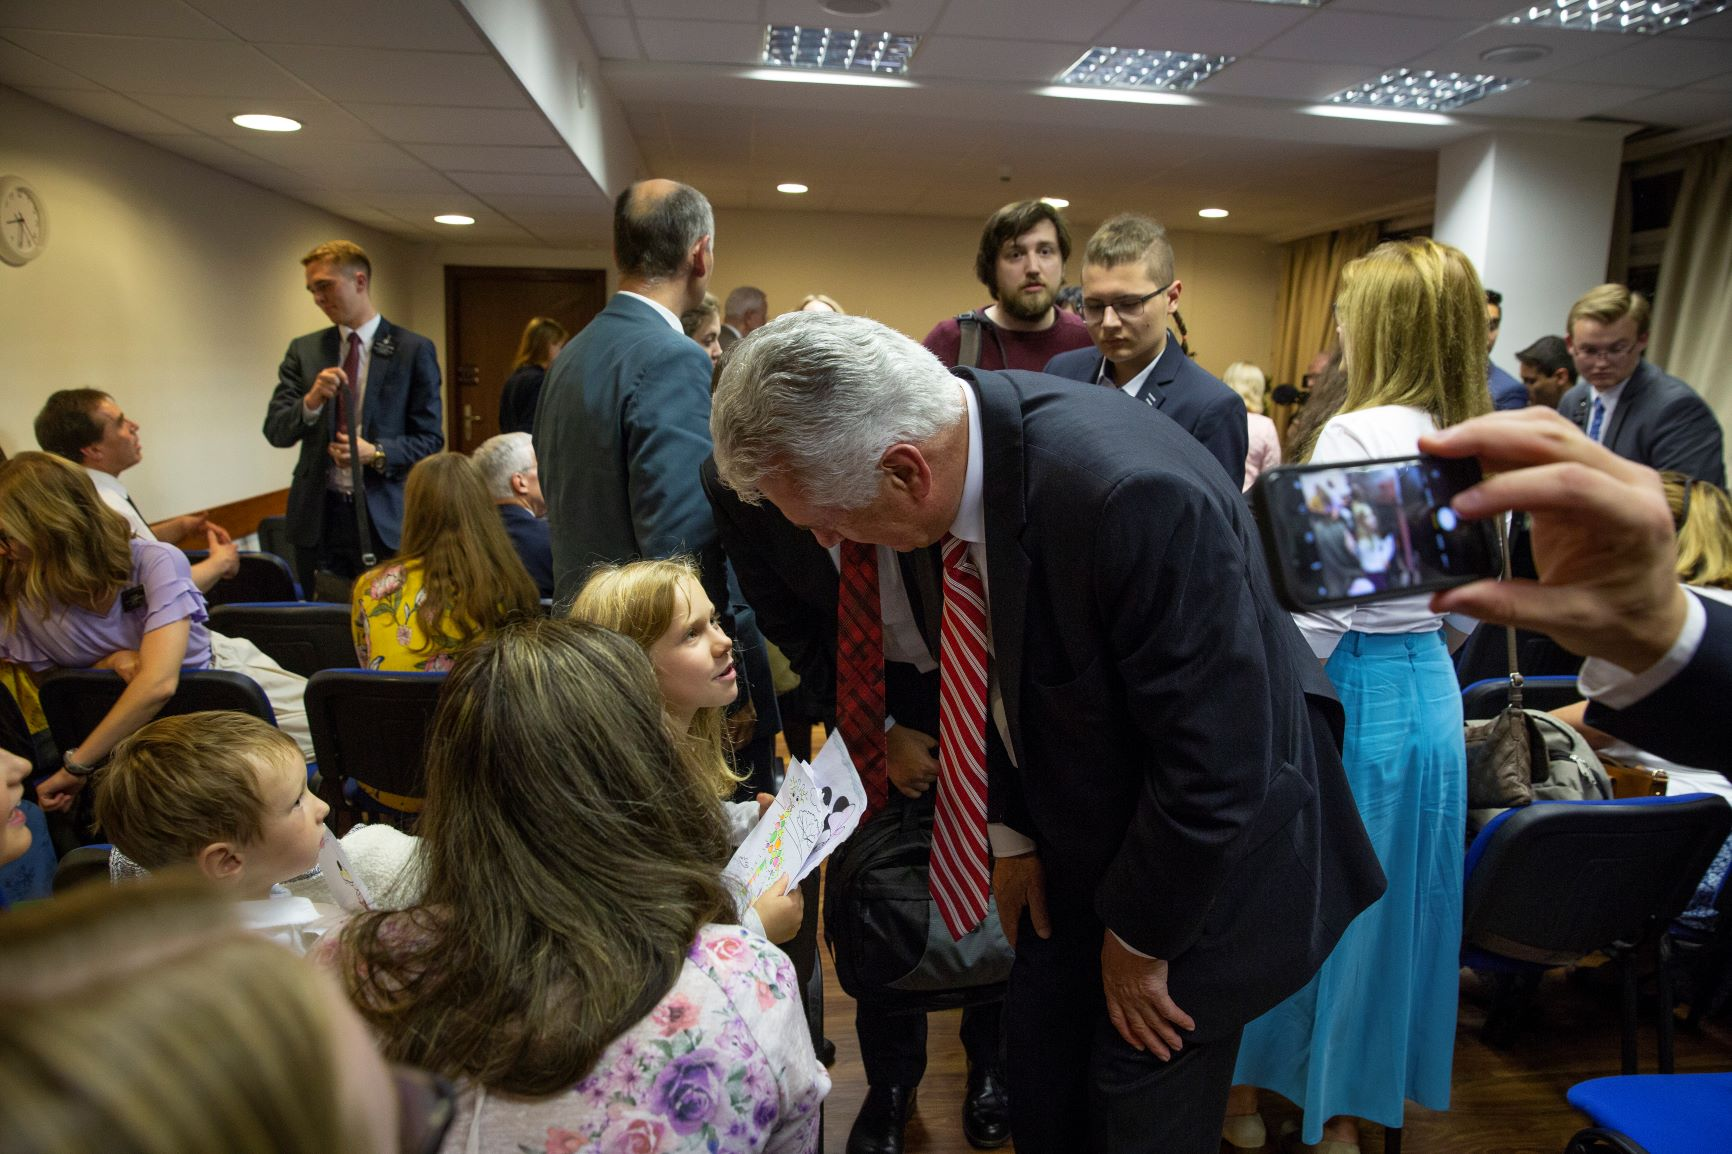 Elder Dieter F. Uchtdorf of the Quorum of the Twelve Apostles leans down to visit with children of the Gdansk Branch after his meeting with members and missionaries there on Sept. 17, 2018.